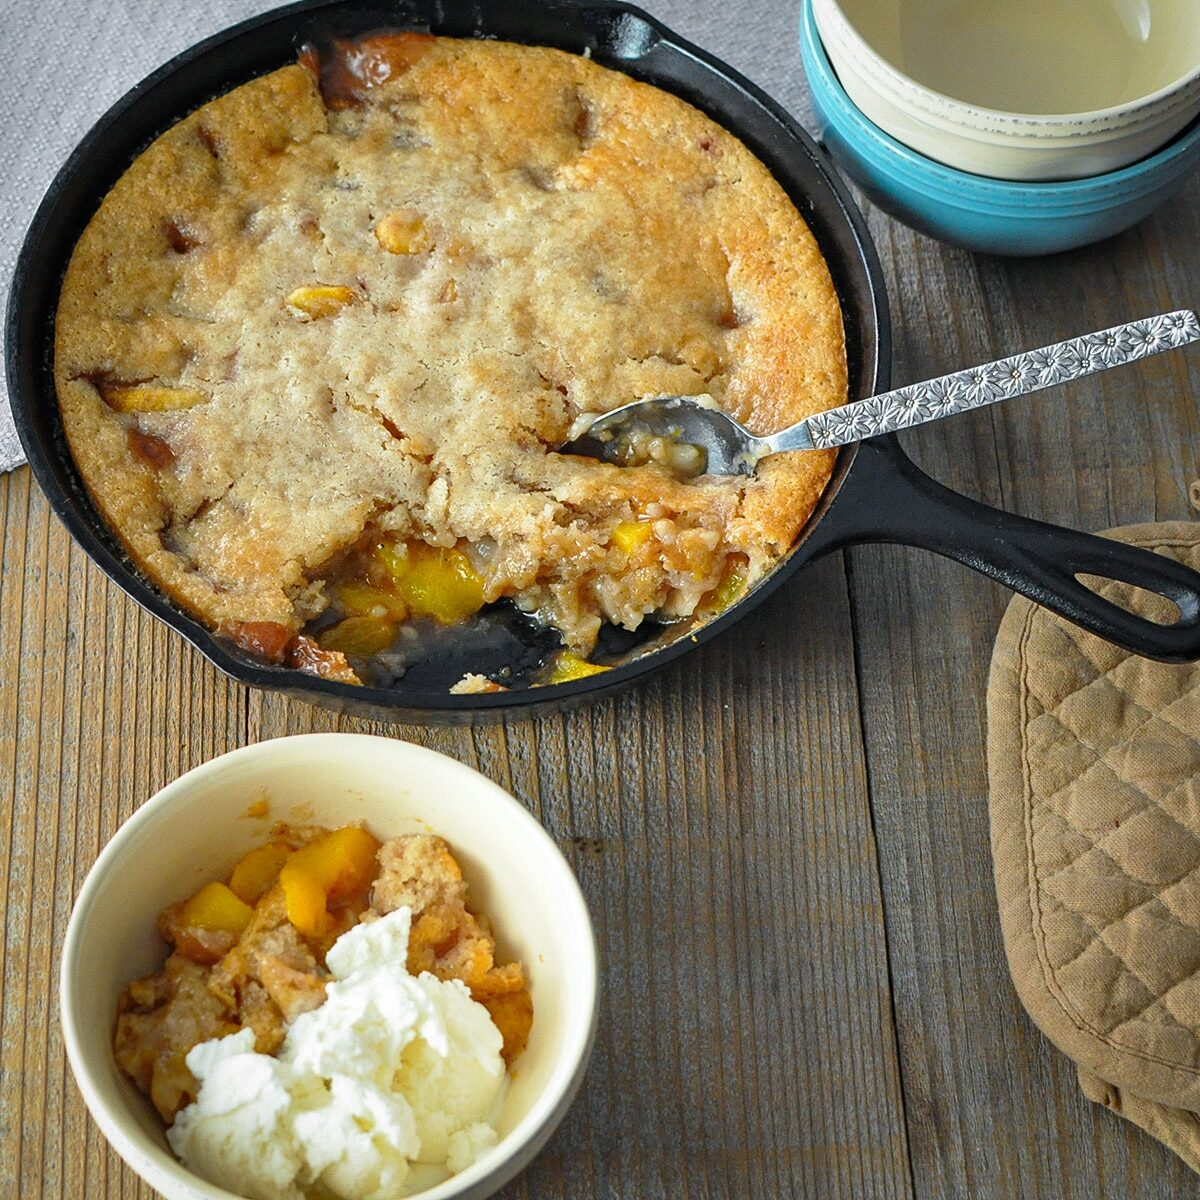 fresh baked cobbler in a cast iron skillet ready to serve